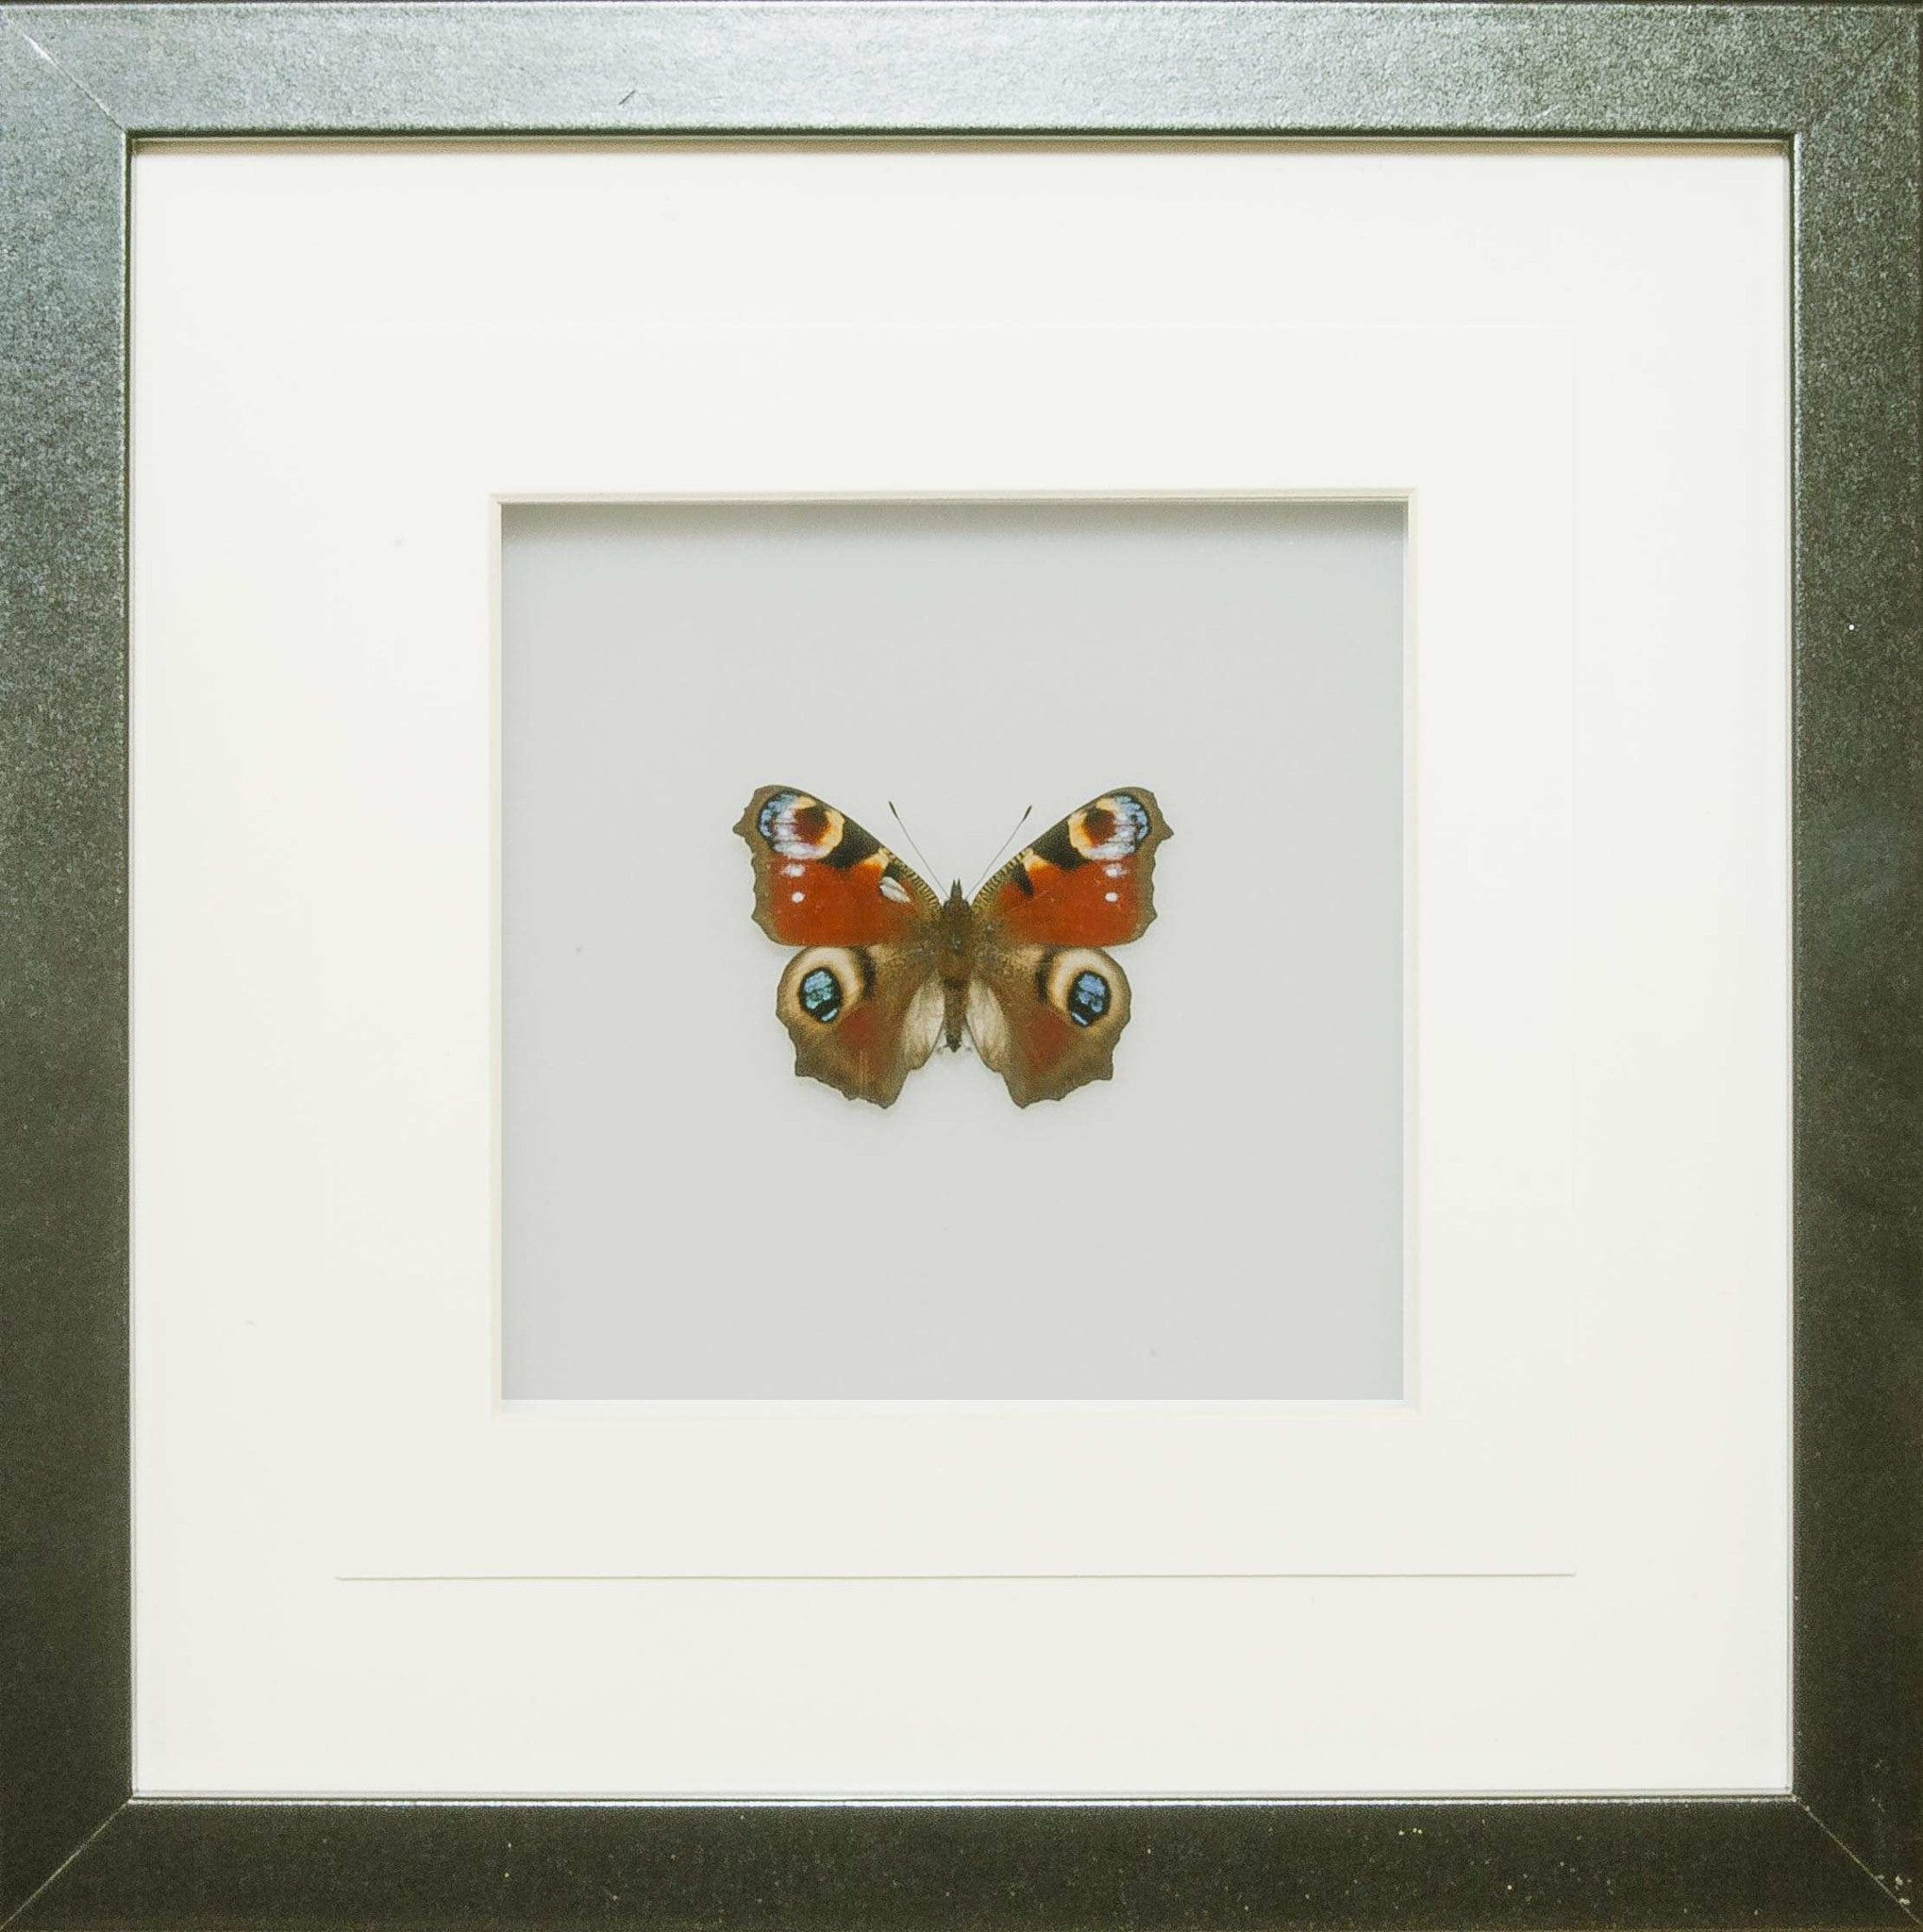 A lovely little framed peacock butterfly in a handmade frame peacock butterfly black frame white background butterfly frame insect frame uk insect jeuxipadfo Gallery